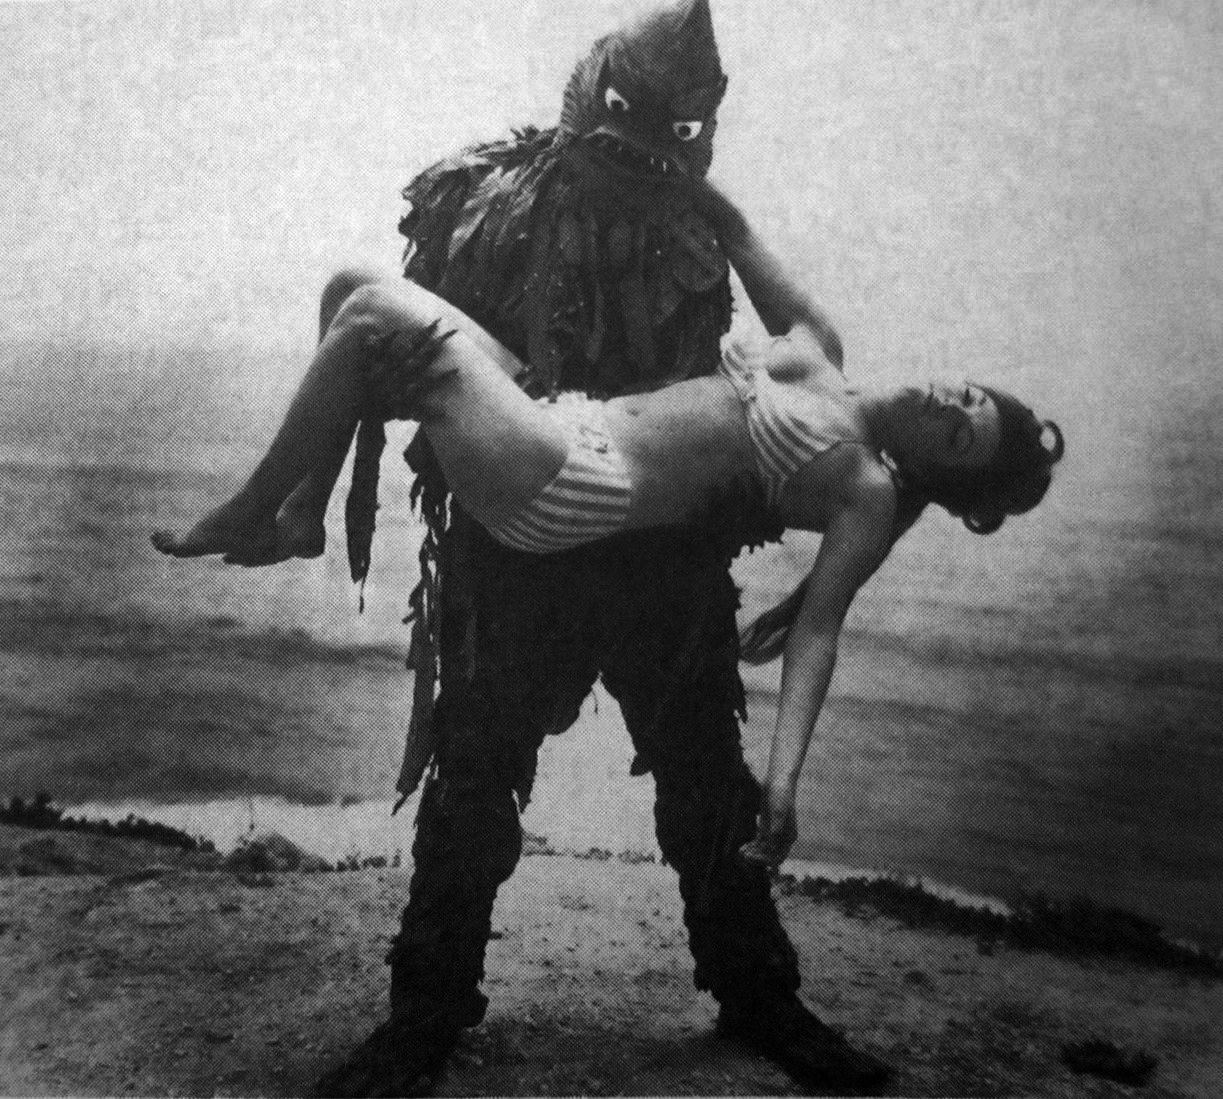 The monster carries a girl away in Monster from the Surf (1965)